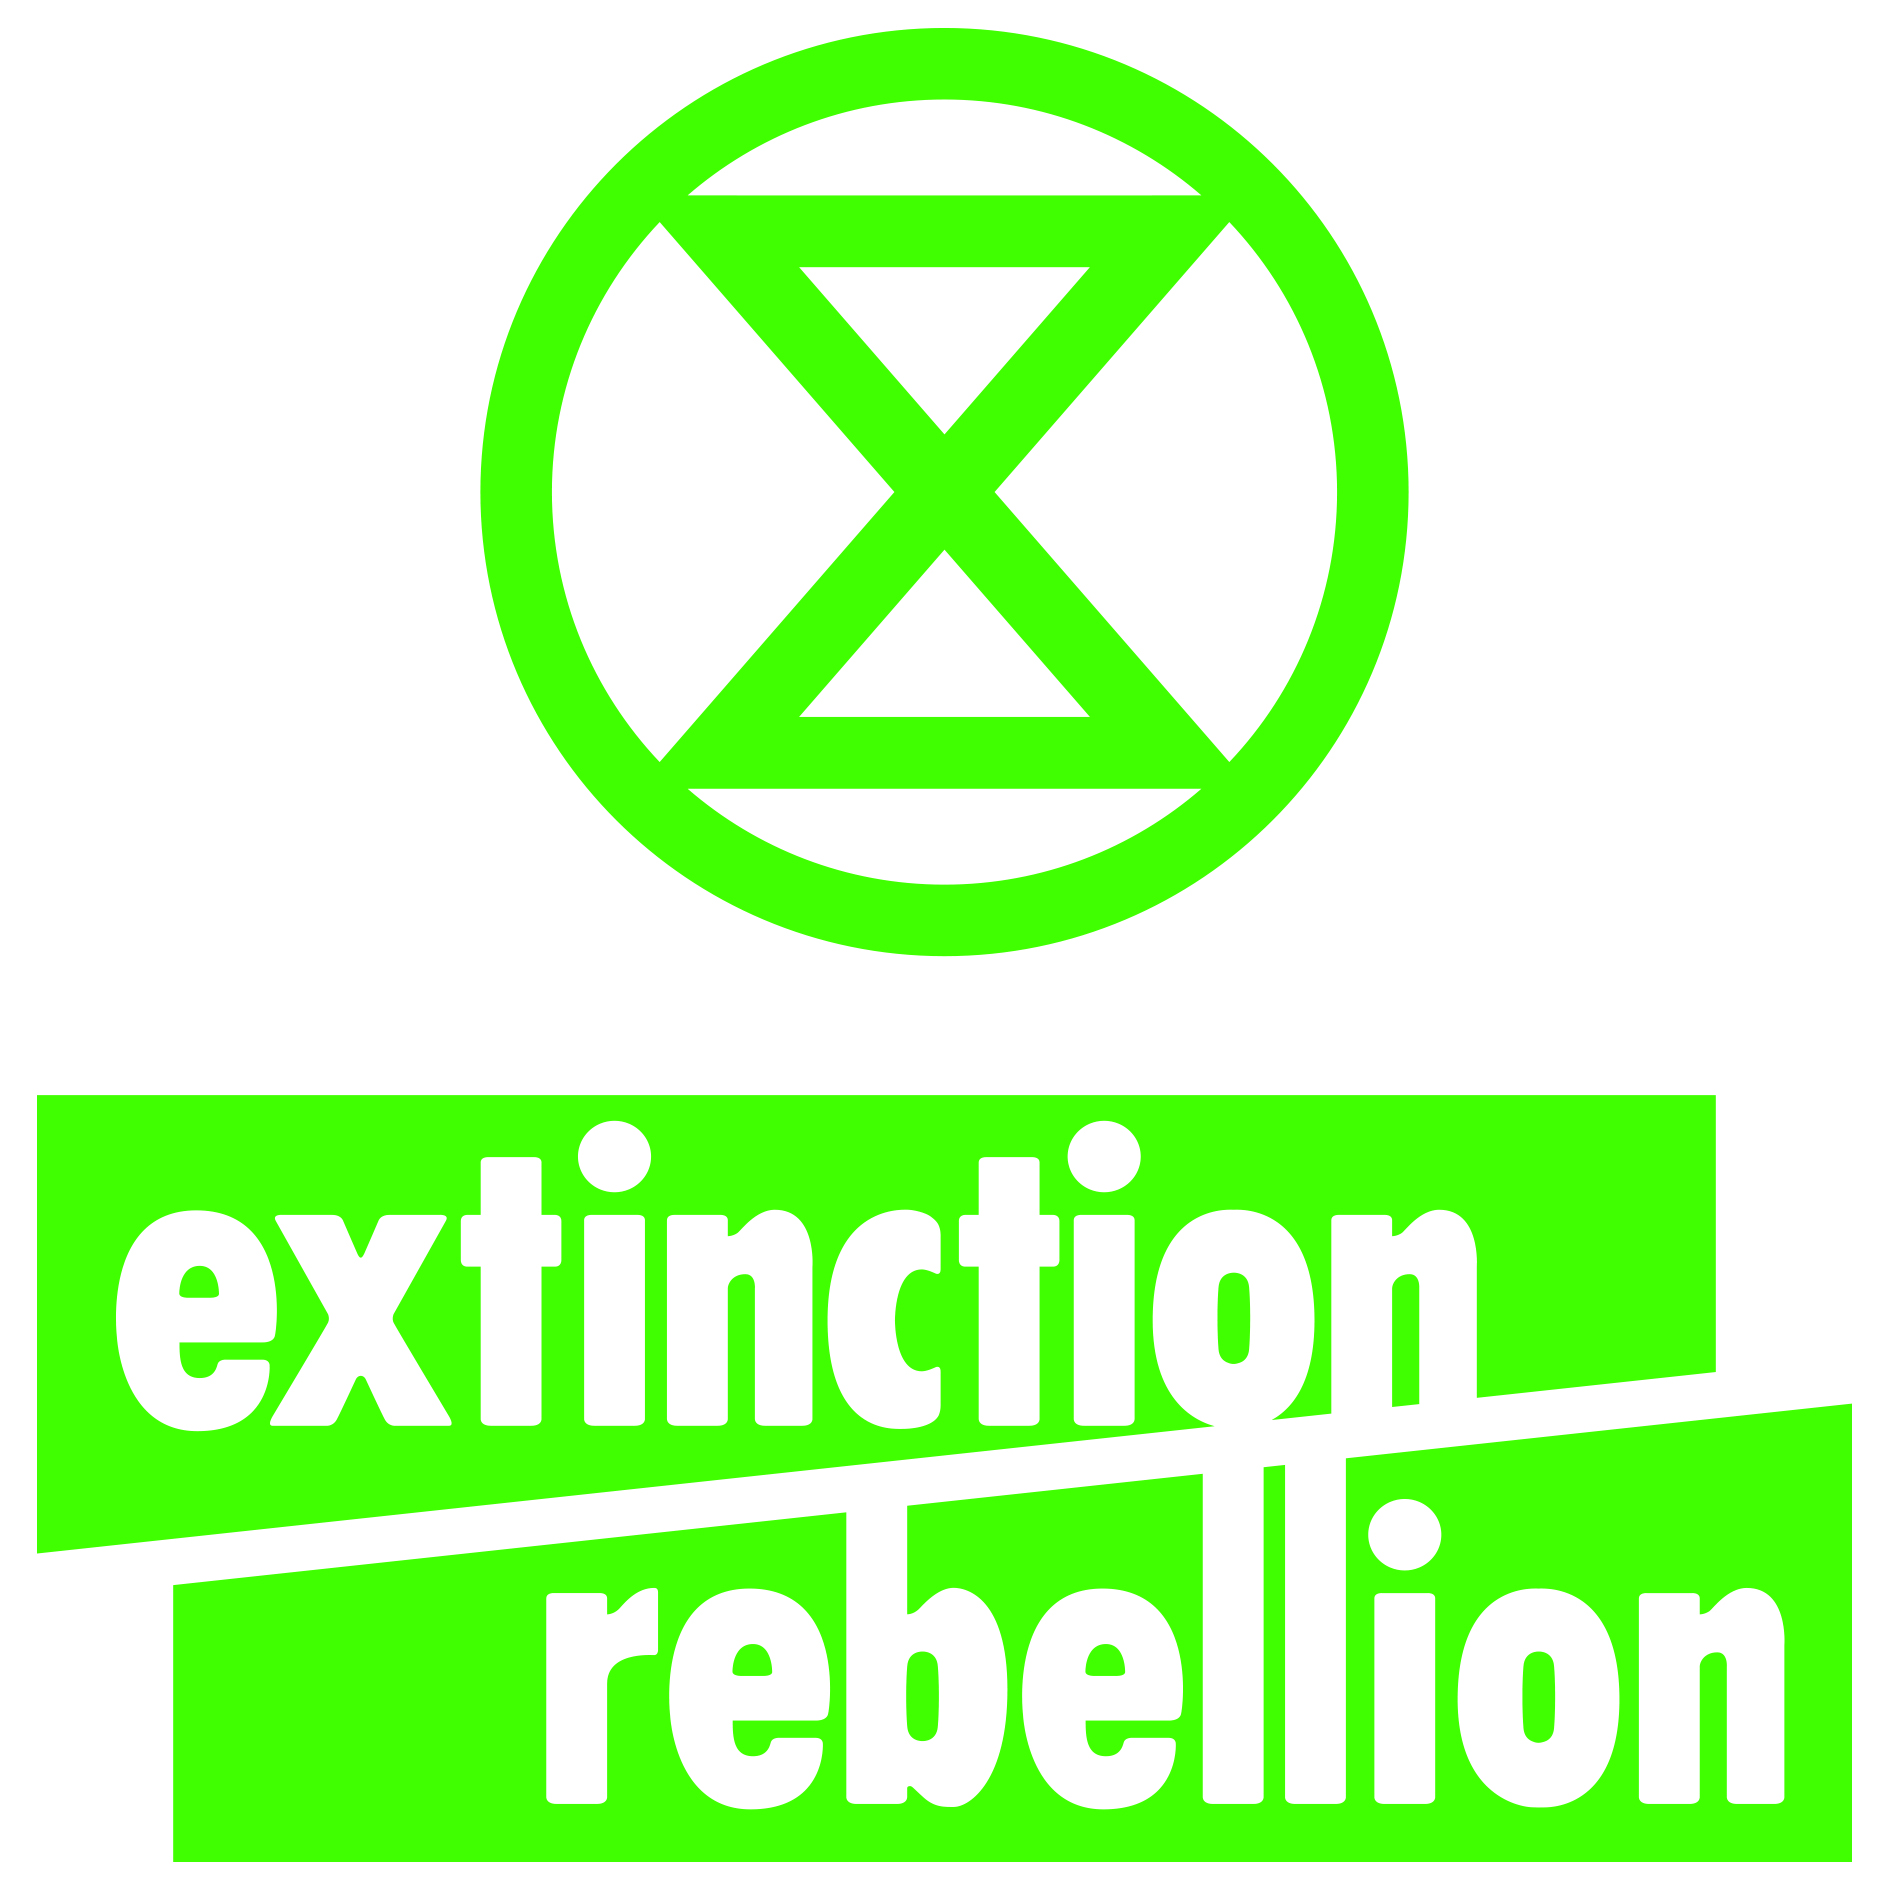 Extinction Rebellion Atlanta